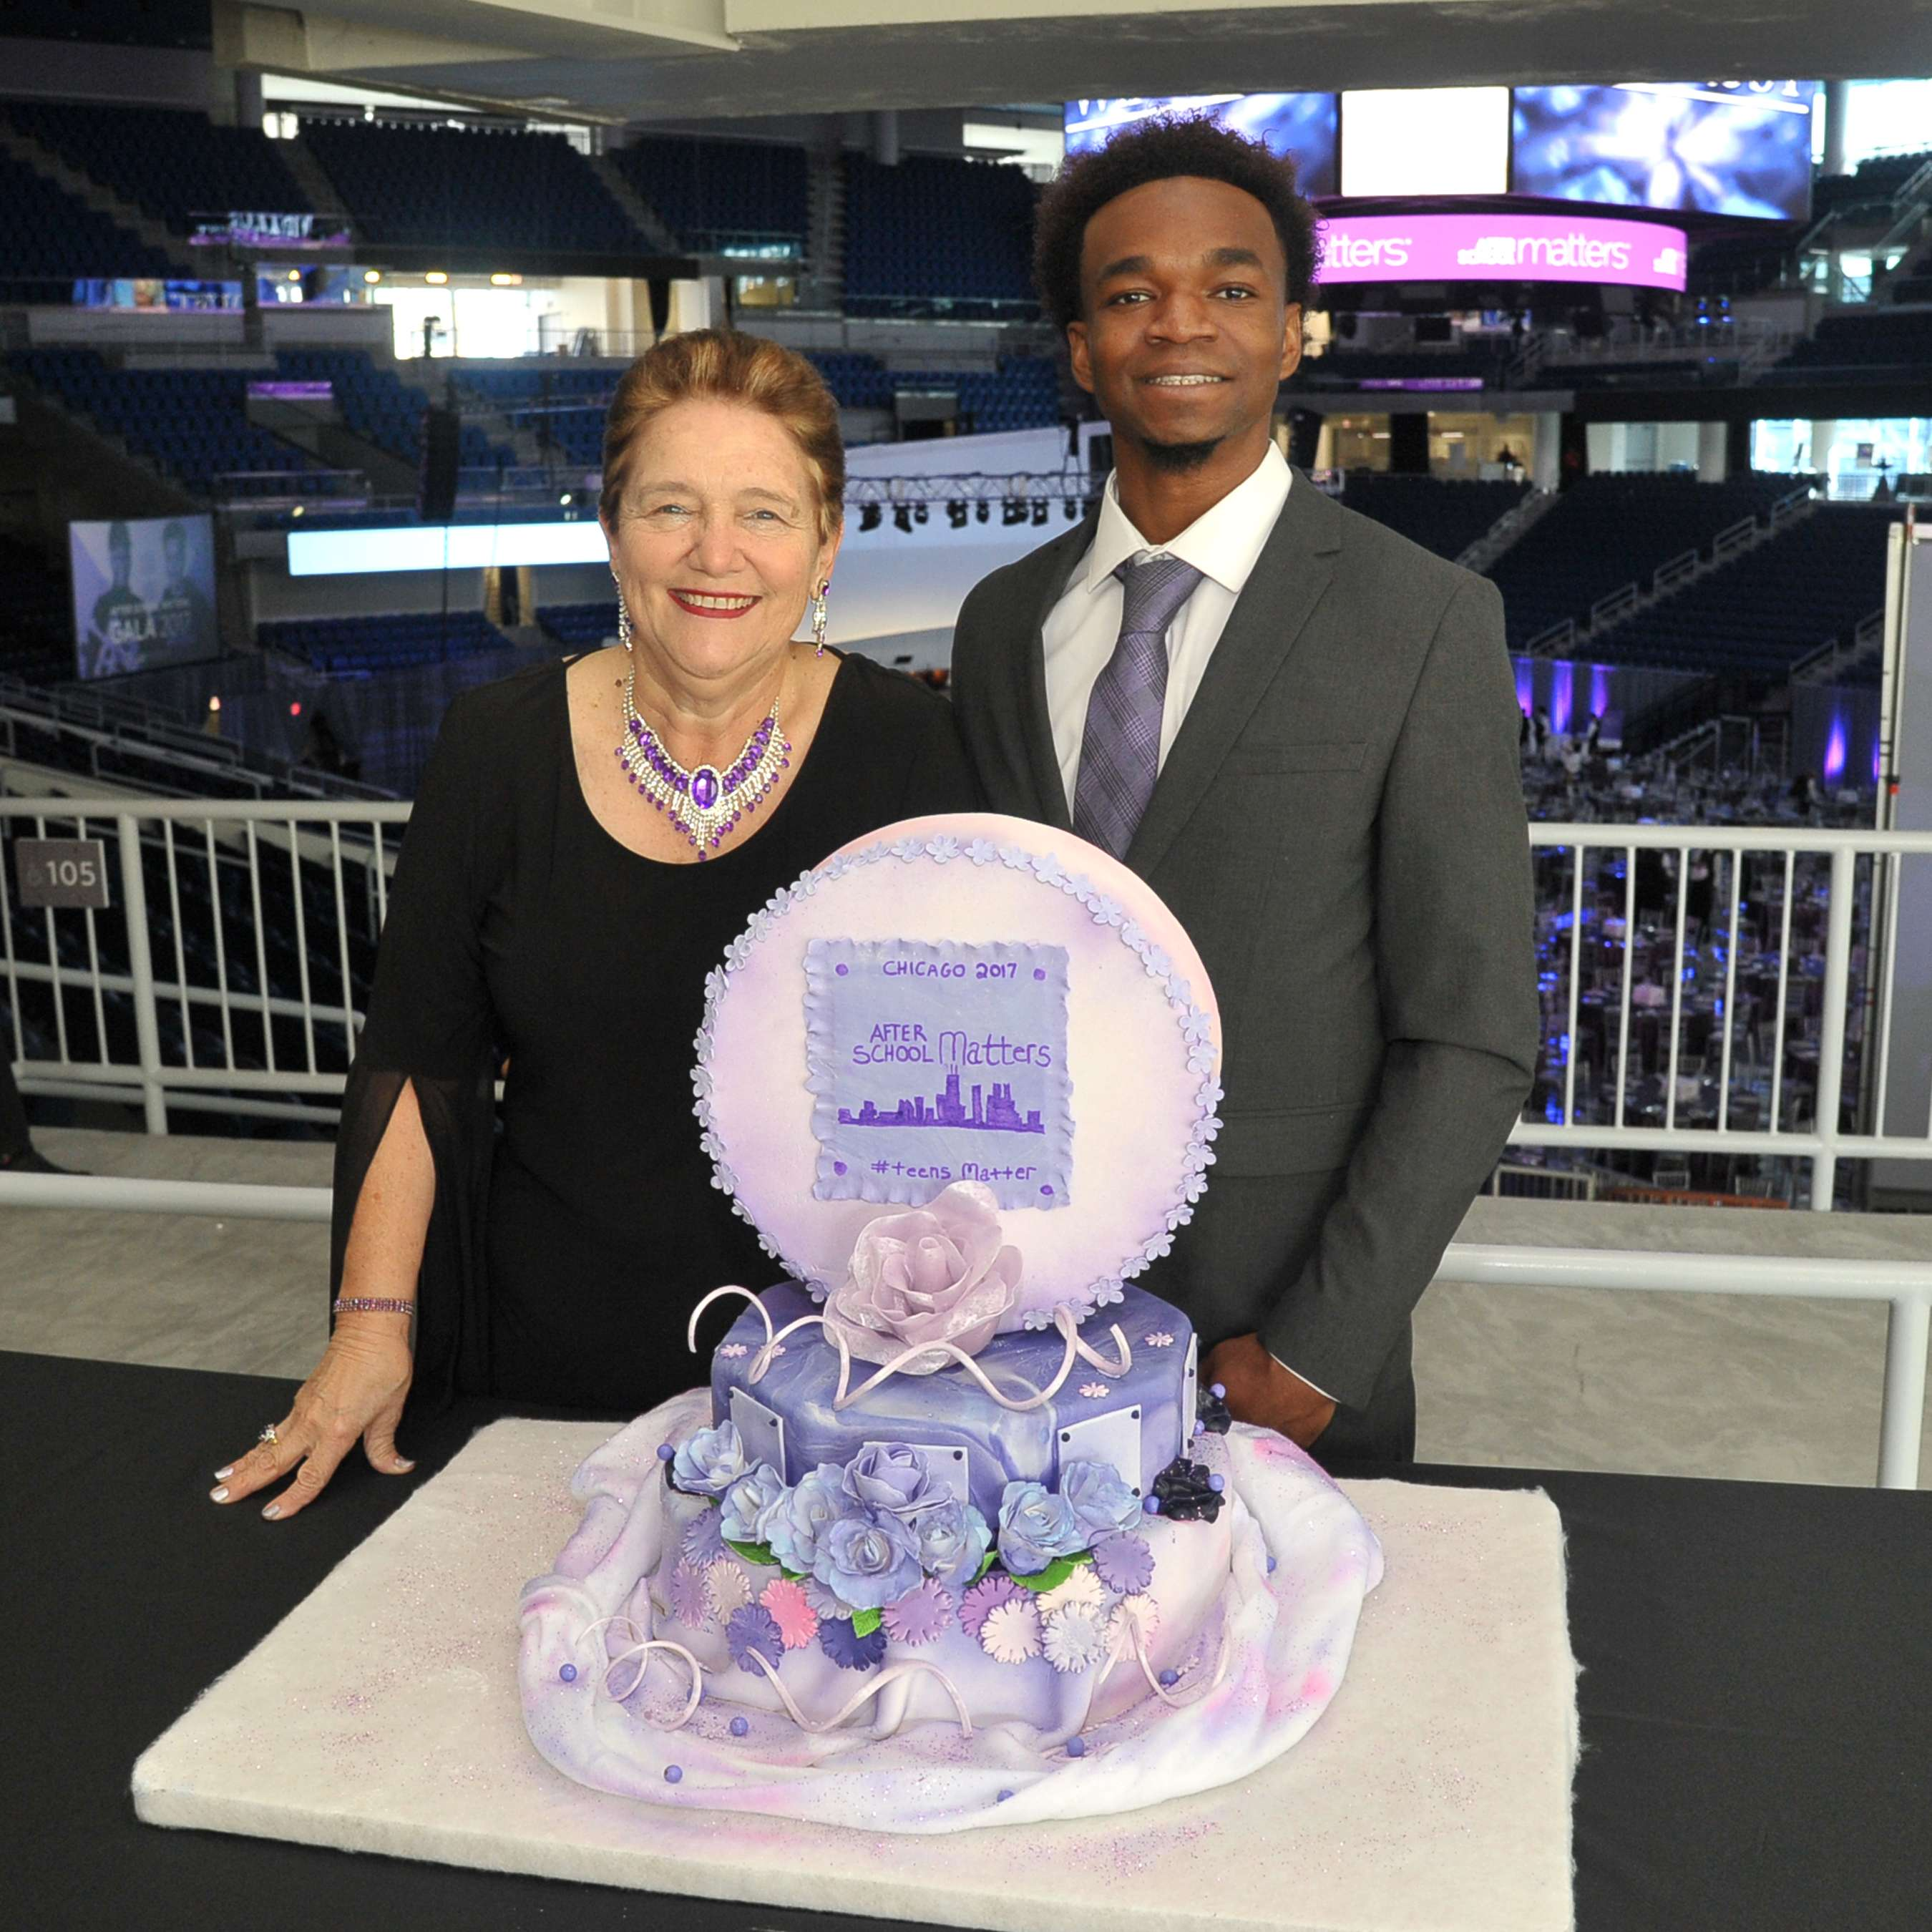 <p>After School Matters alumnus and current French Pastry School student Darrius Thomas (right) stands with his After School Matters instructor and life mentor Gloria Hafer (left) in front of a cake they decorated together for the After School Matters Annual Gala at Wintrust Arena on September 18, 2017. Photo credit: Dan Rest</p>